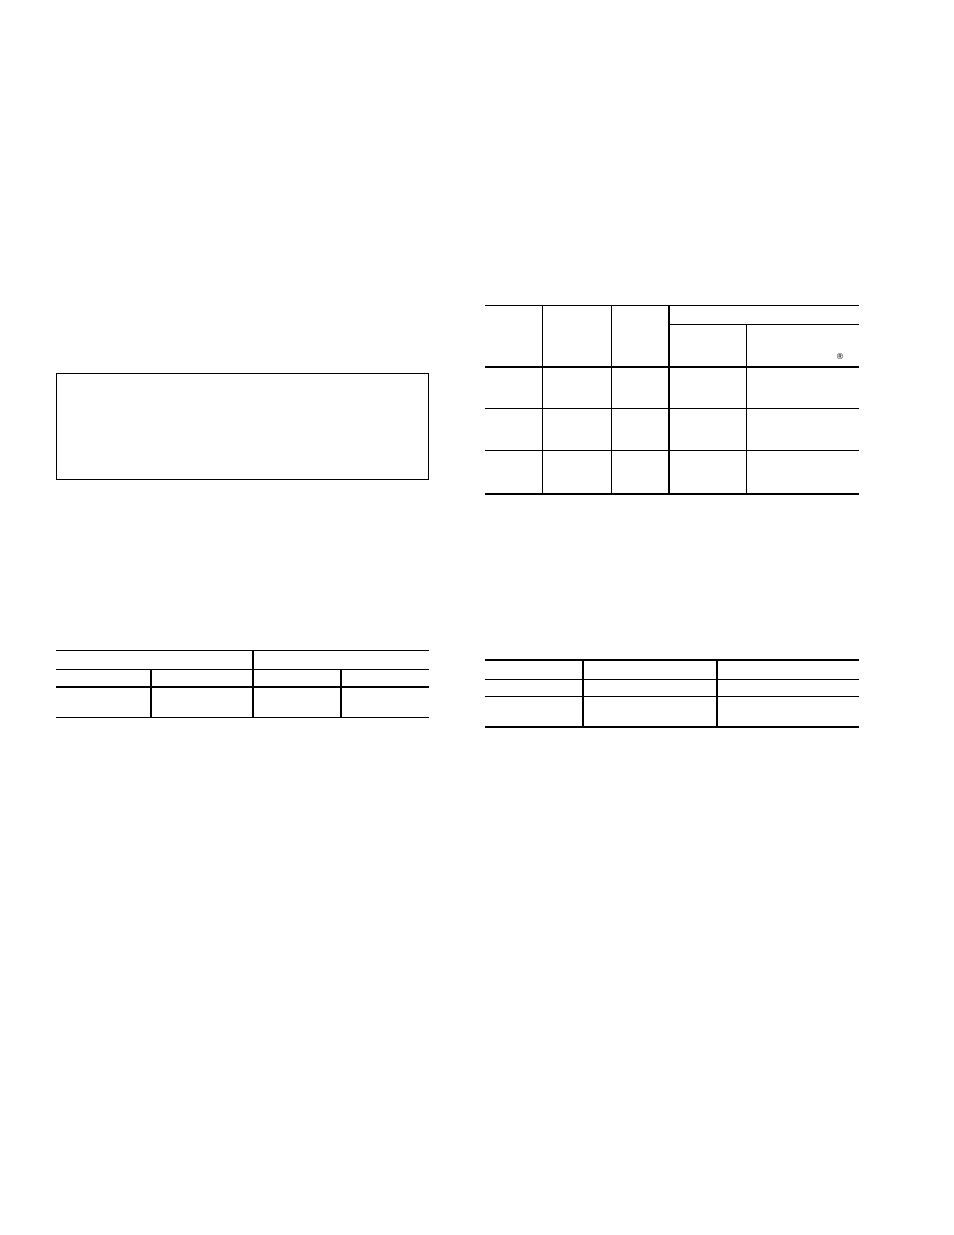 Pressure Safety Switch Proplumber Wiring Diagram Oil Ops Compressor Protection High 954x1235